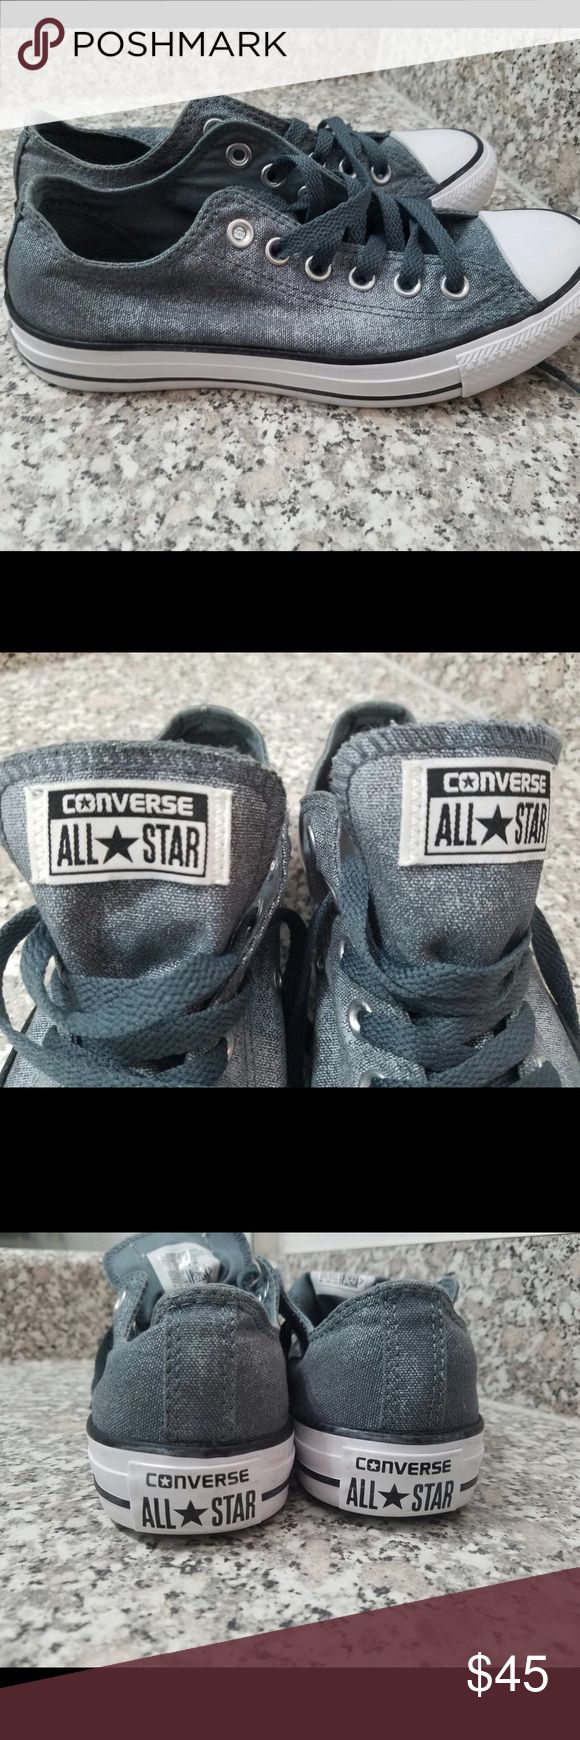 Converse All Star Shoes Like new Converse Shoes Sneakers